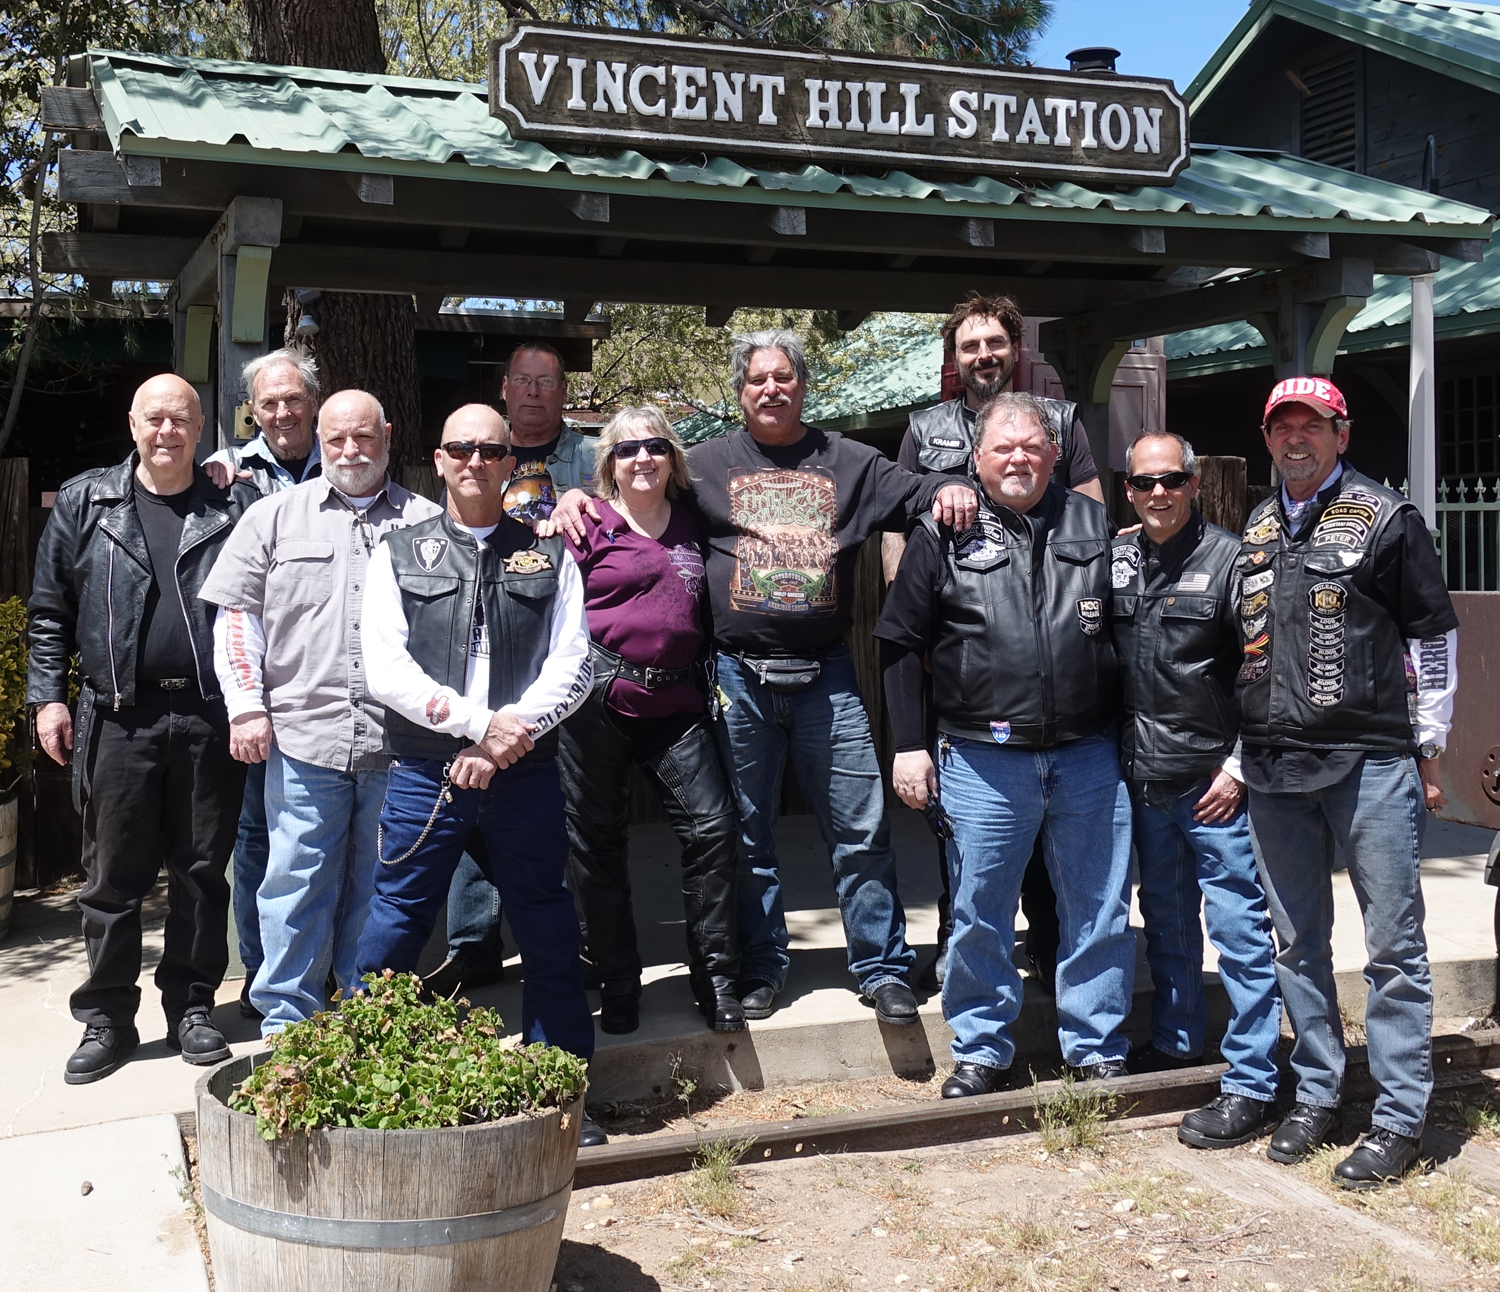 Vincent Hill Station - 4.14.2019